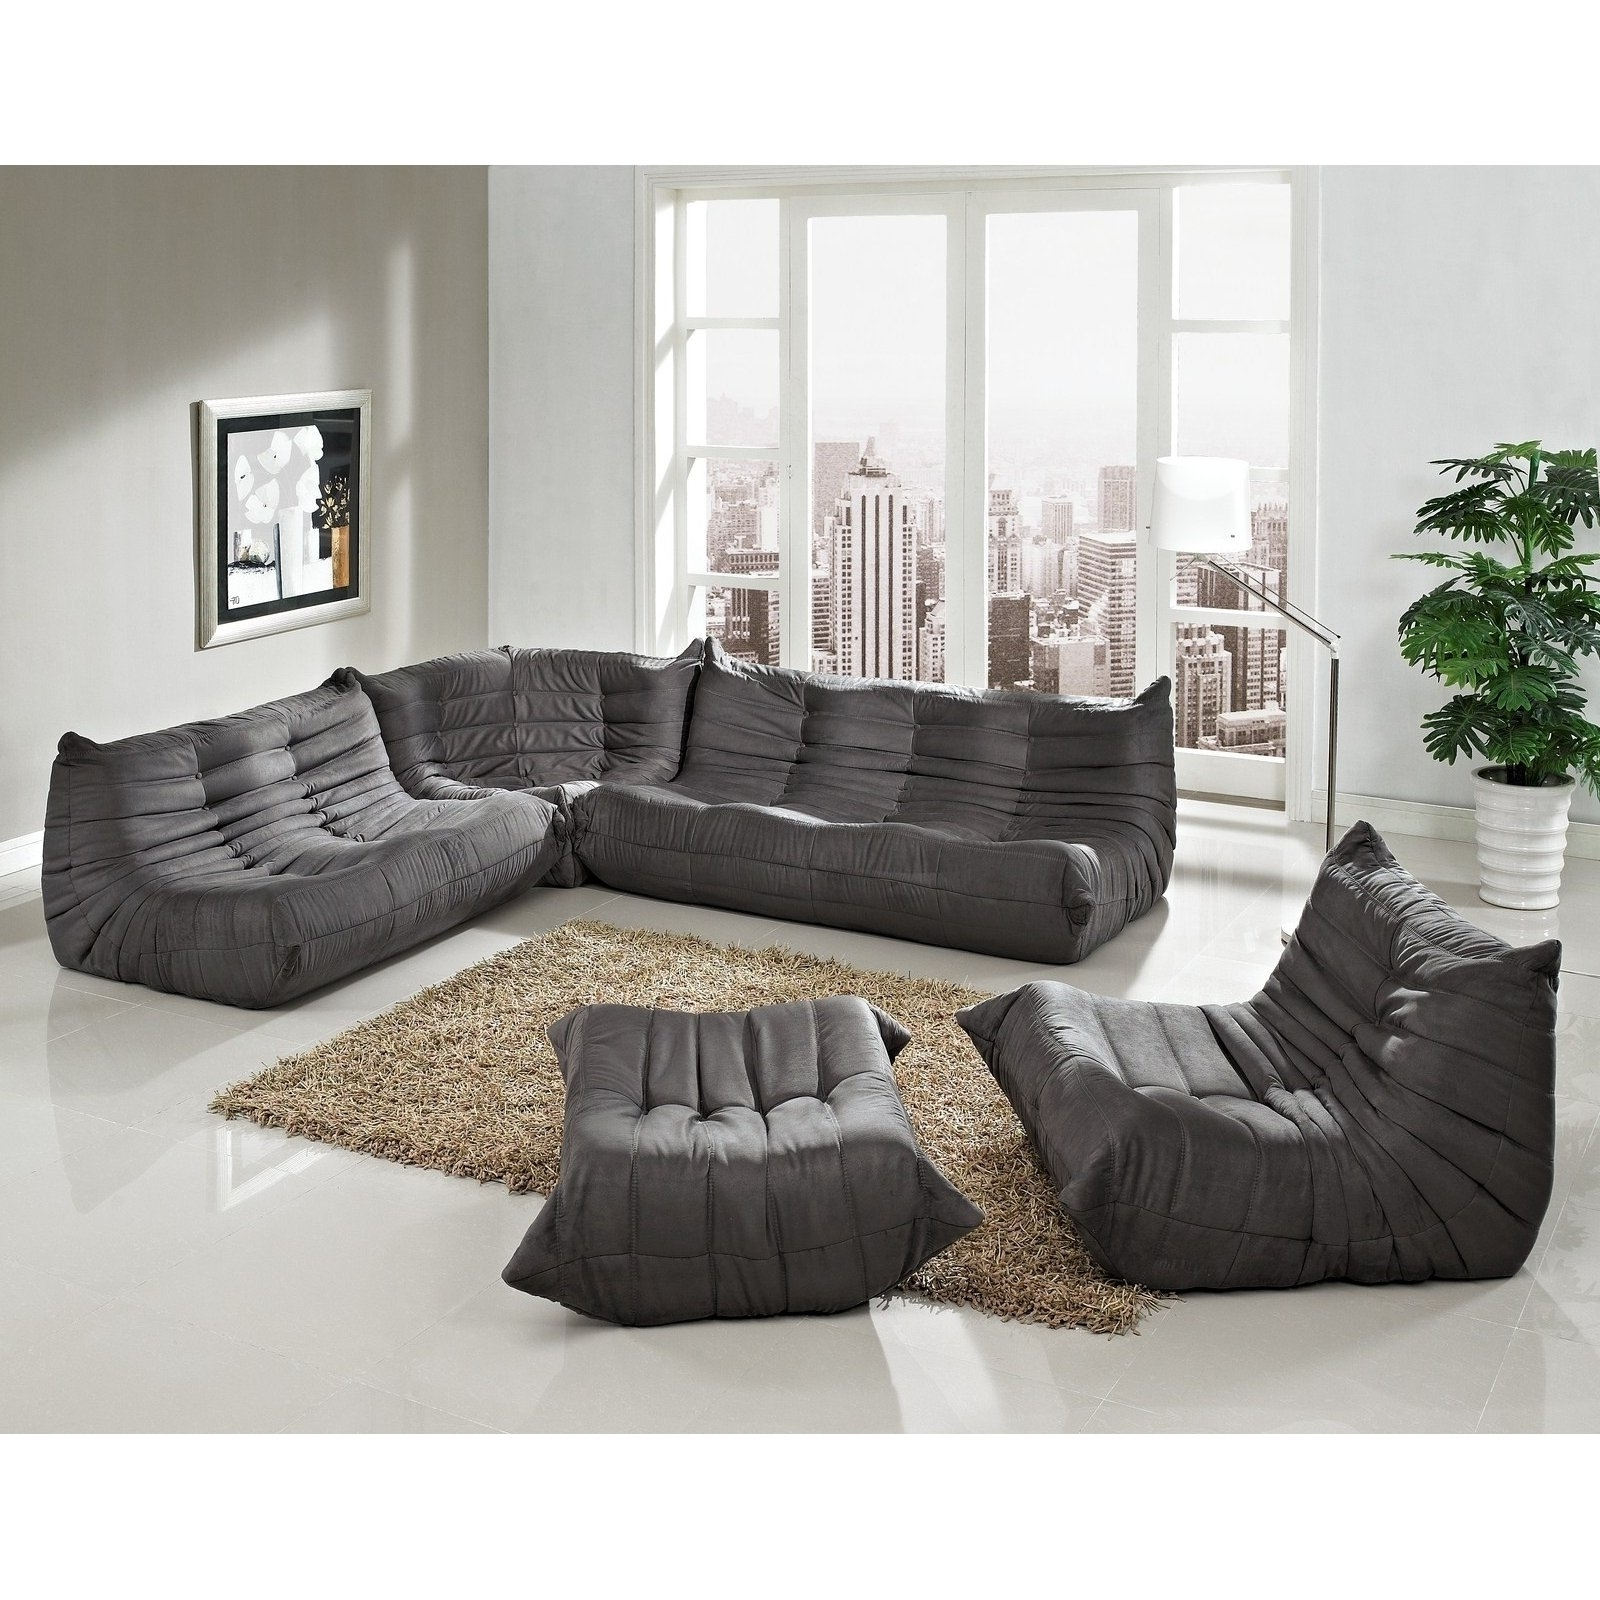 Trendy Unique Sectional Sofas In Unique Low Profile Sectional Sofa 26 For Sofa Design Ideas With Low (View 3 of 15)